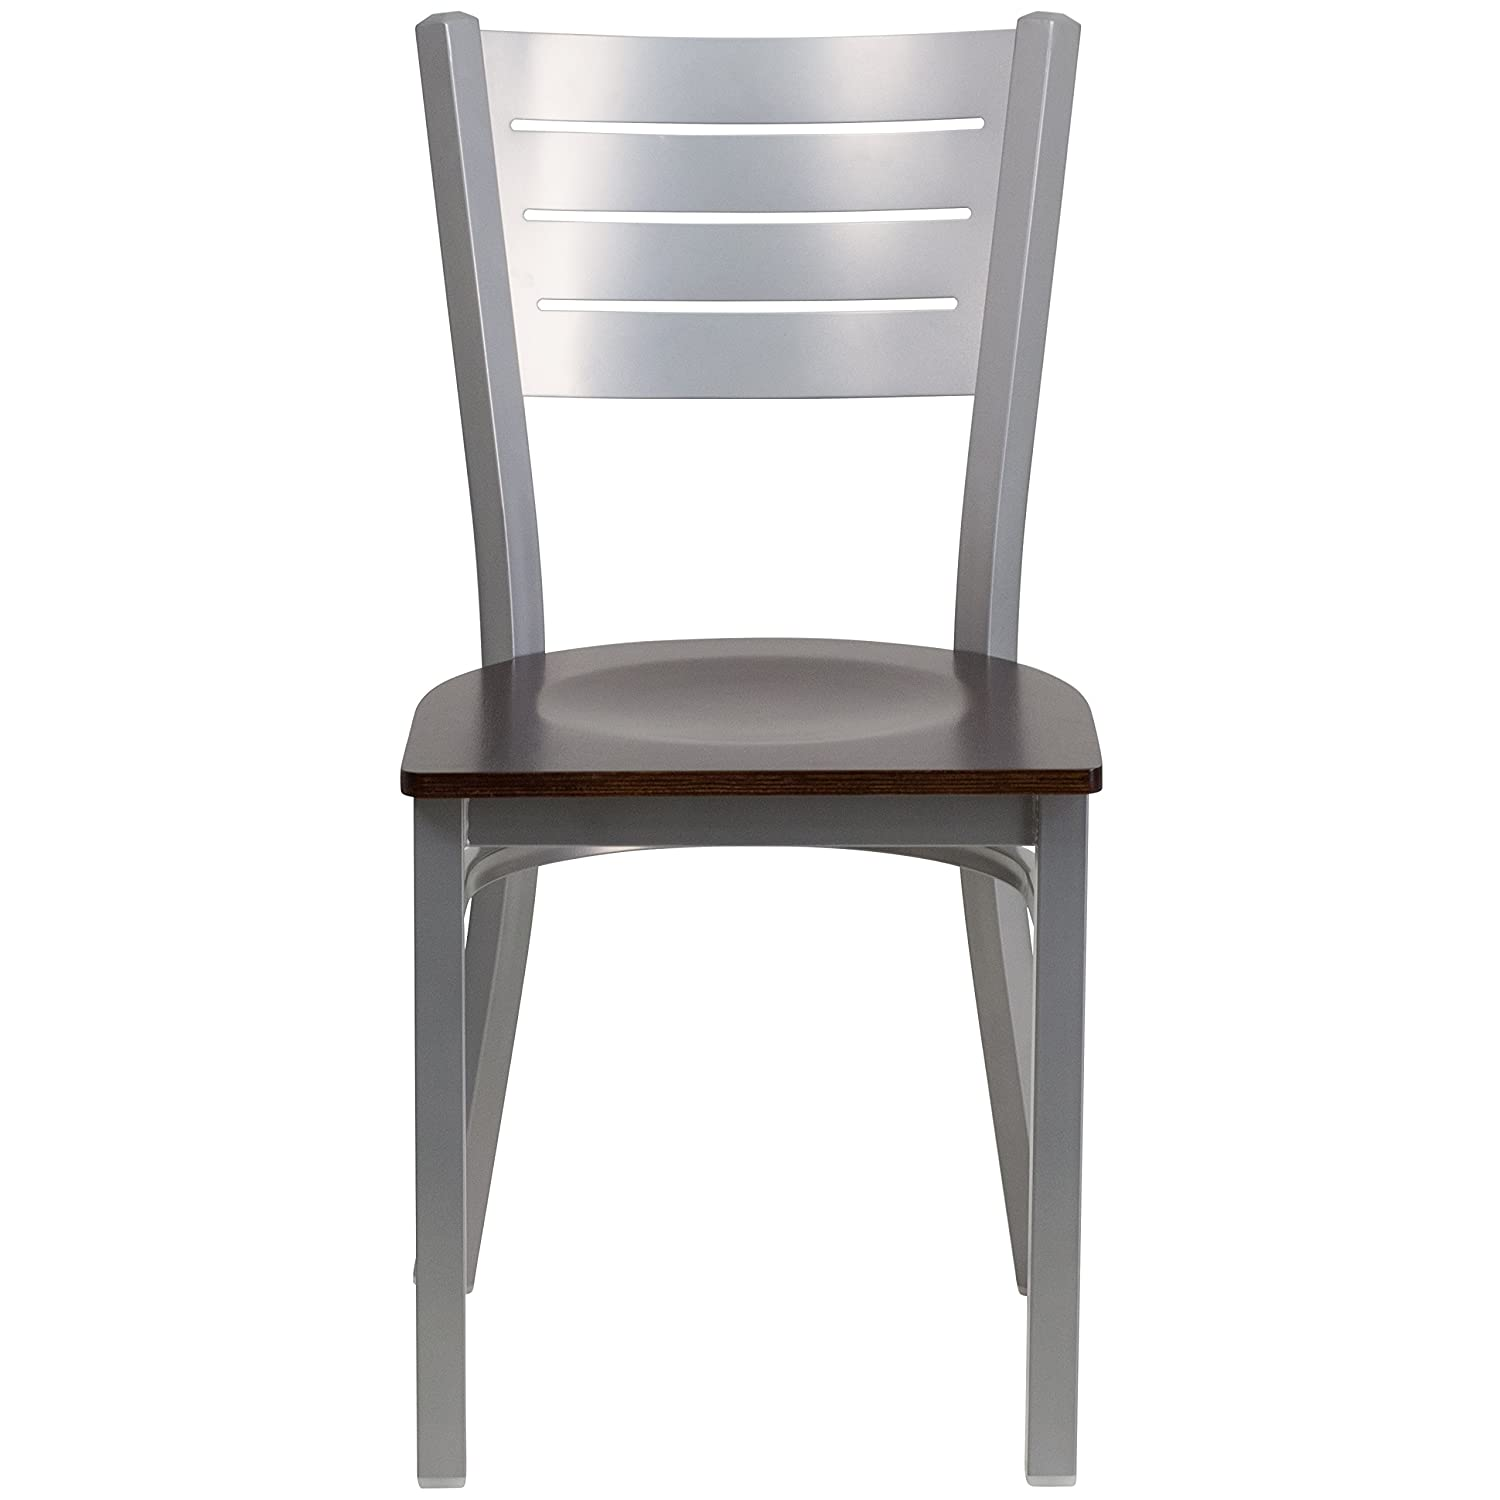 Amazon.com   Flash Furniture HERCULES Series Silver Slat Back Metal  Restaurant Chair   Walnut Wood Seat   Chairs